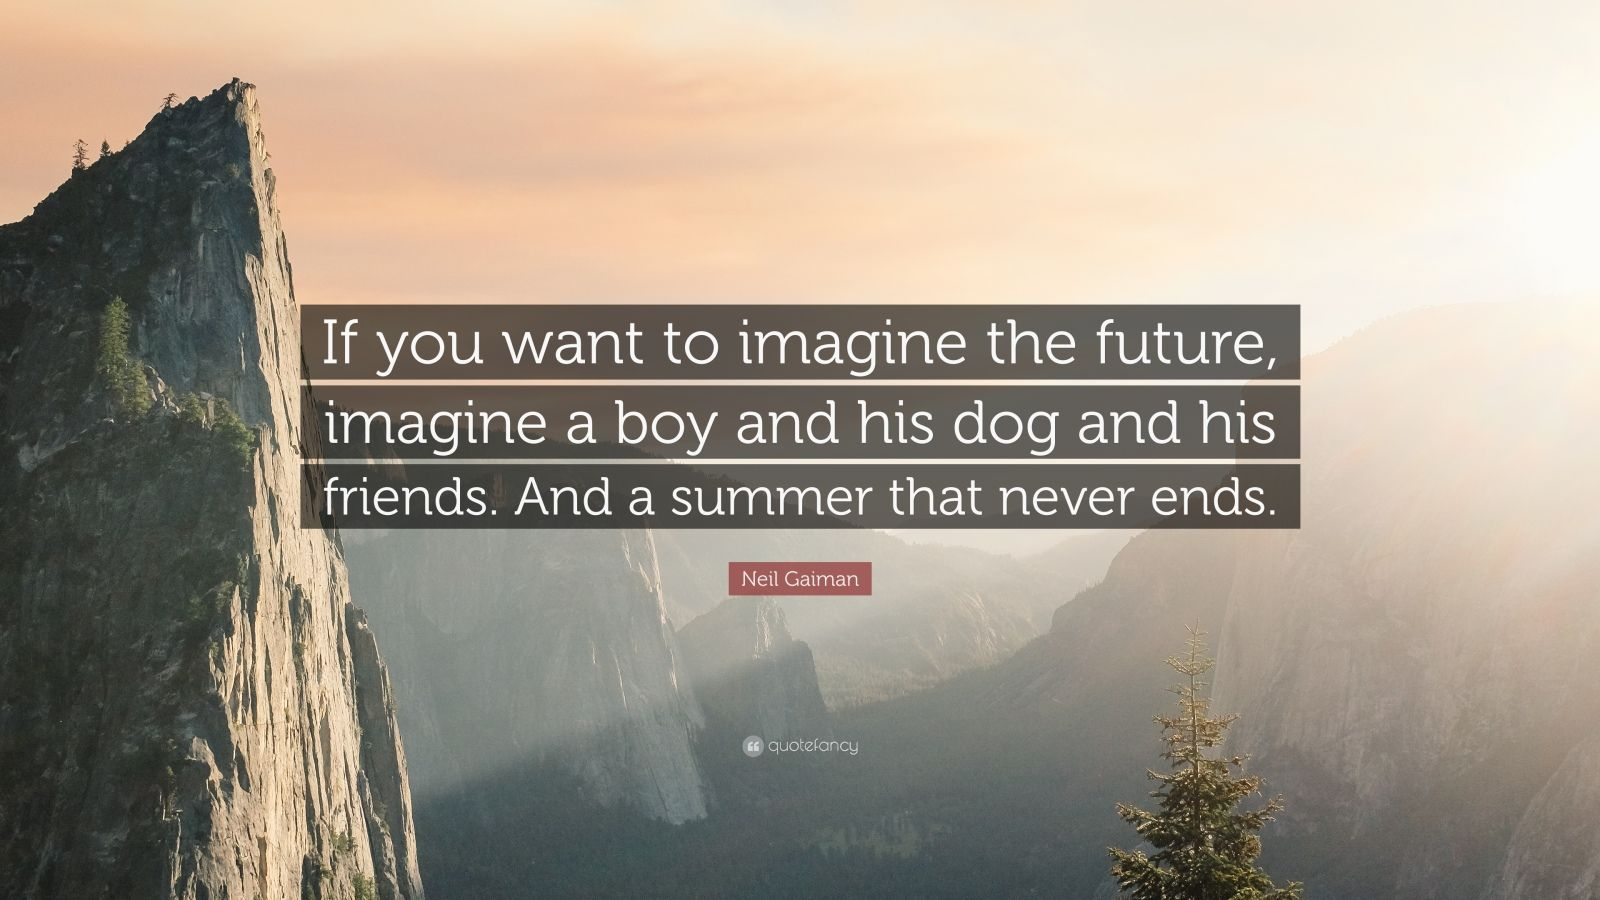 """Neil Gaiman Quote: """"If you want to imagine the future, imagine a boy and his dog and his friends. And a summer that never ends."""""""